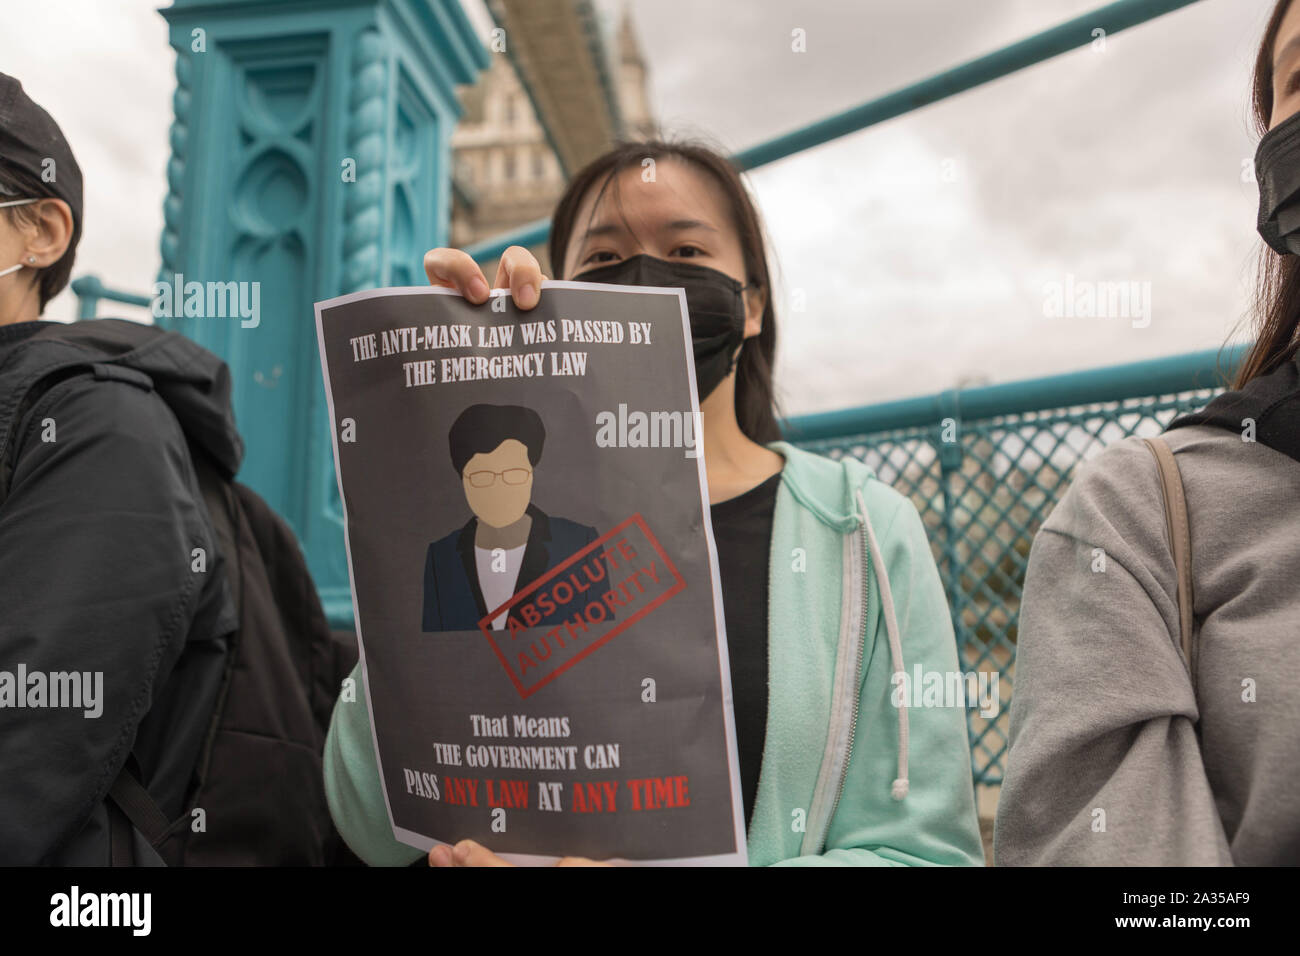 London, UK. 5th Oct, 2019. Chinese artist Badiucao and supporters join hands in a human chain, a showing of solidarity with protesters in Hong Kong. The Lennon Wall flag, symbolising Hong Kongs fight for freedom is also symbolically raised. Penelope Barritt/Alamy Live News Stock Photo